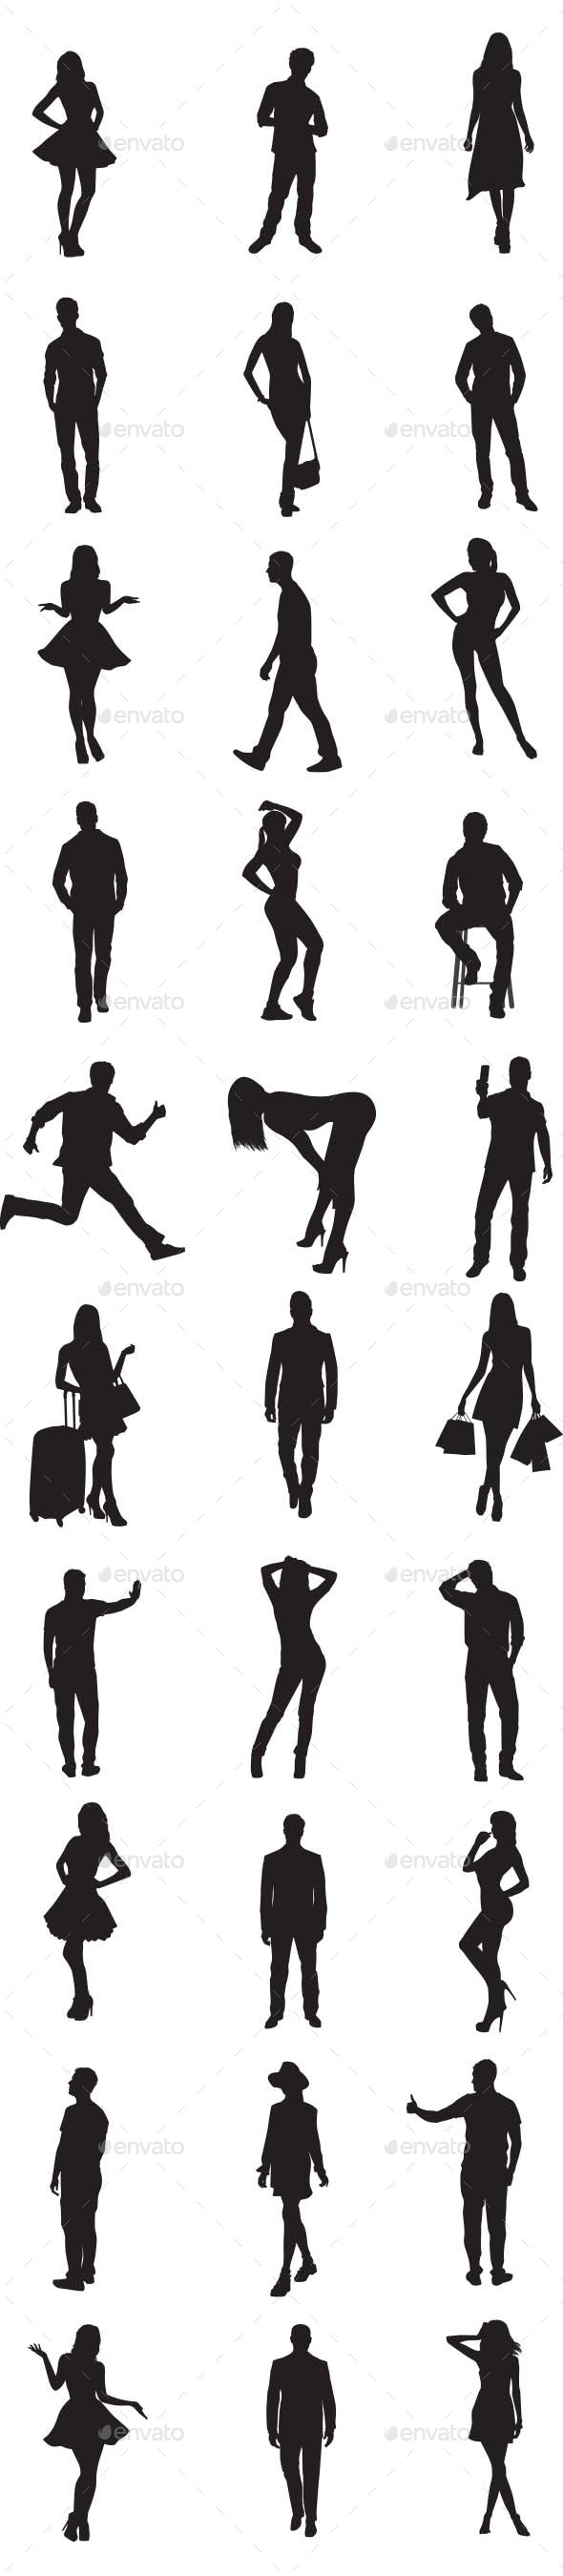 GraphicRiver People Silhouettes 9813865